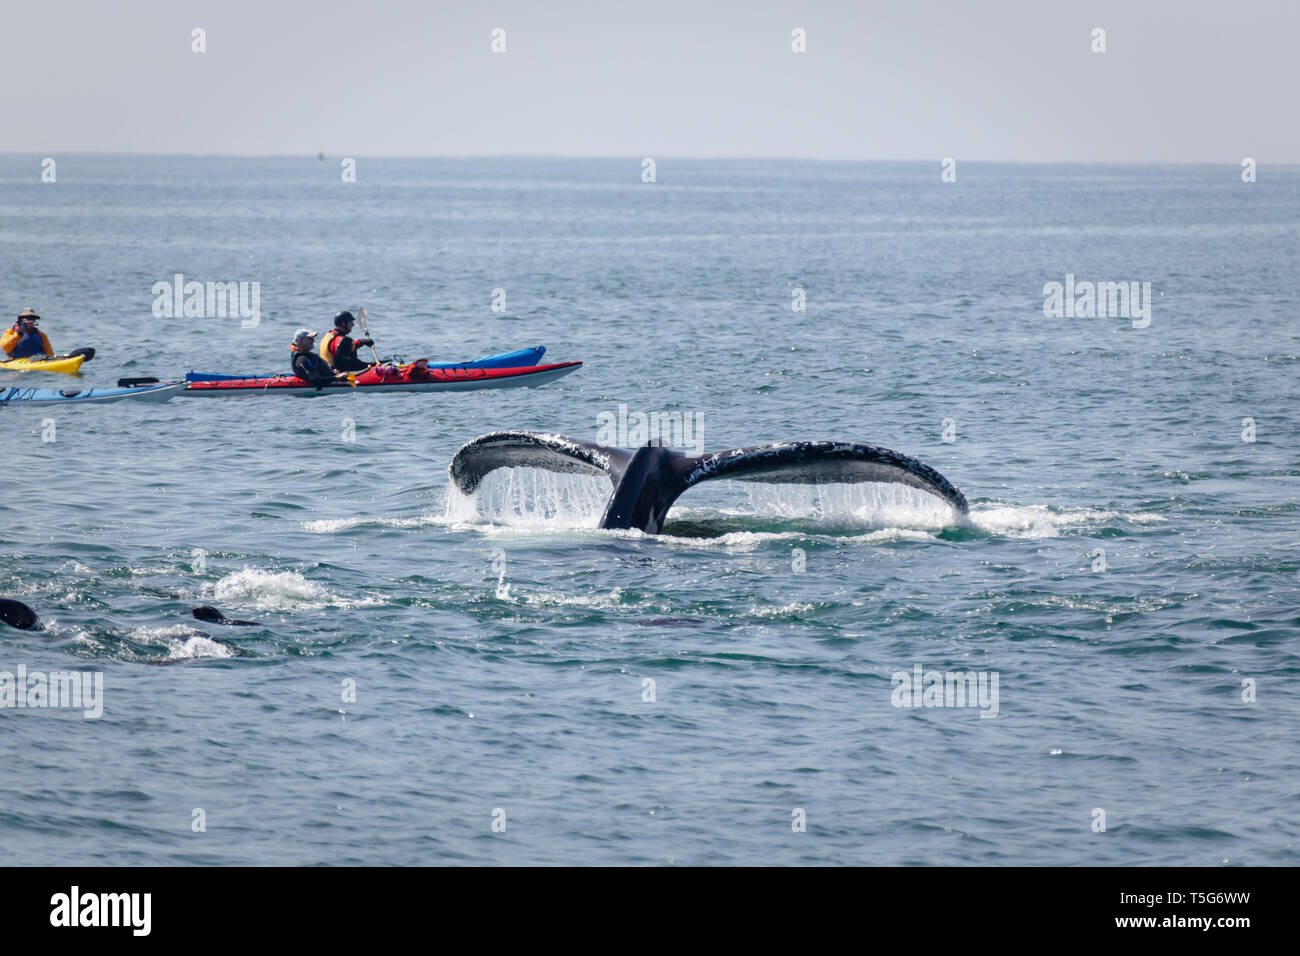 Closeup of small group of kayaks  dangerously close to a whale lob-tailing in the ocean with 2 seals watching - Stock Image